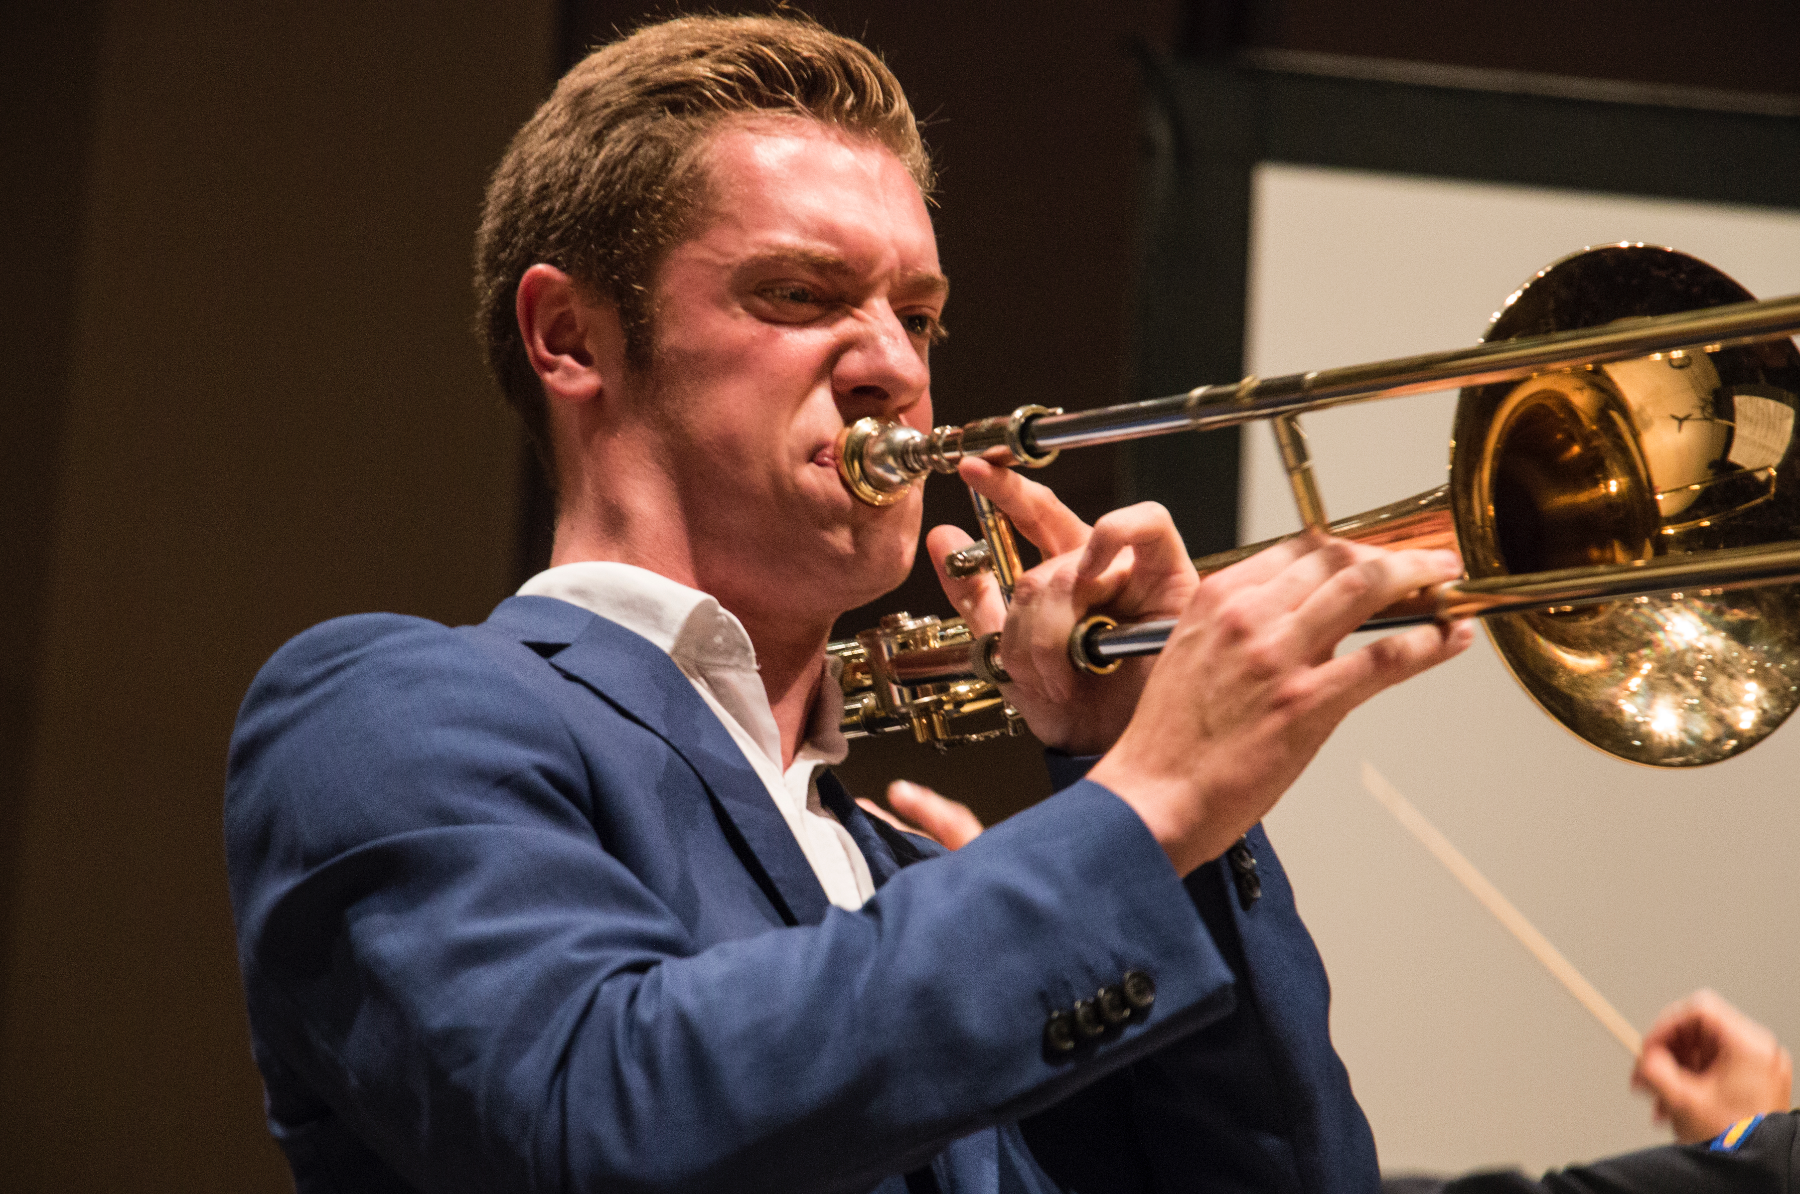 Soloist Peter Moore plays the trombone during the United States Army Field Band and Soldiers' Chorus concert at the Voxman Building on July 12, 2018. (Katina Zentz/The Daily Iowan)